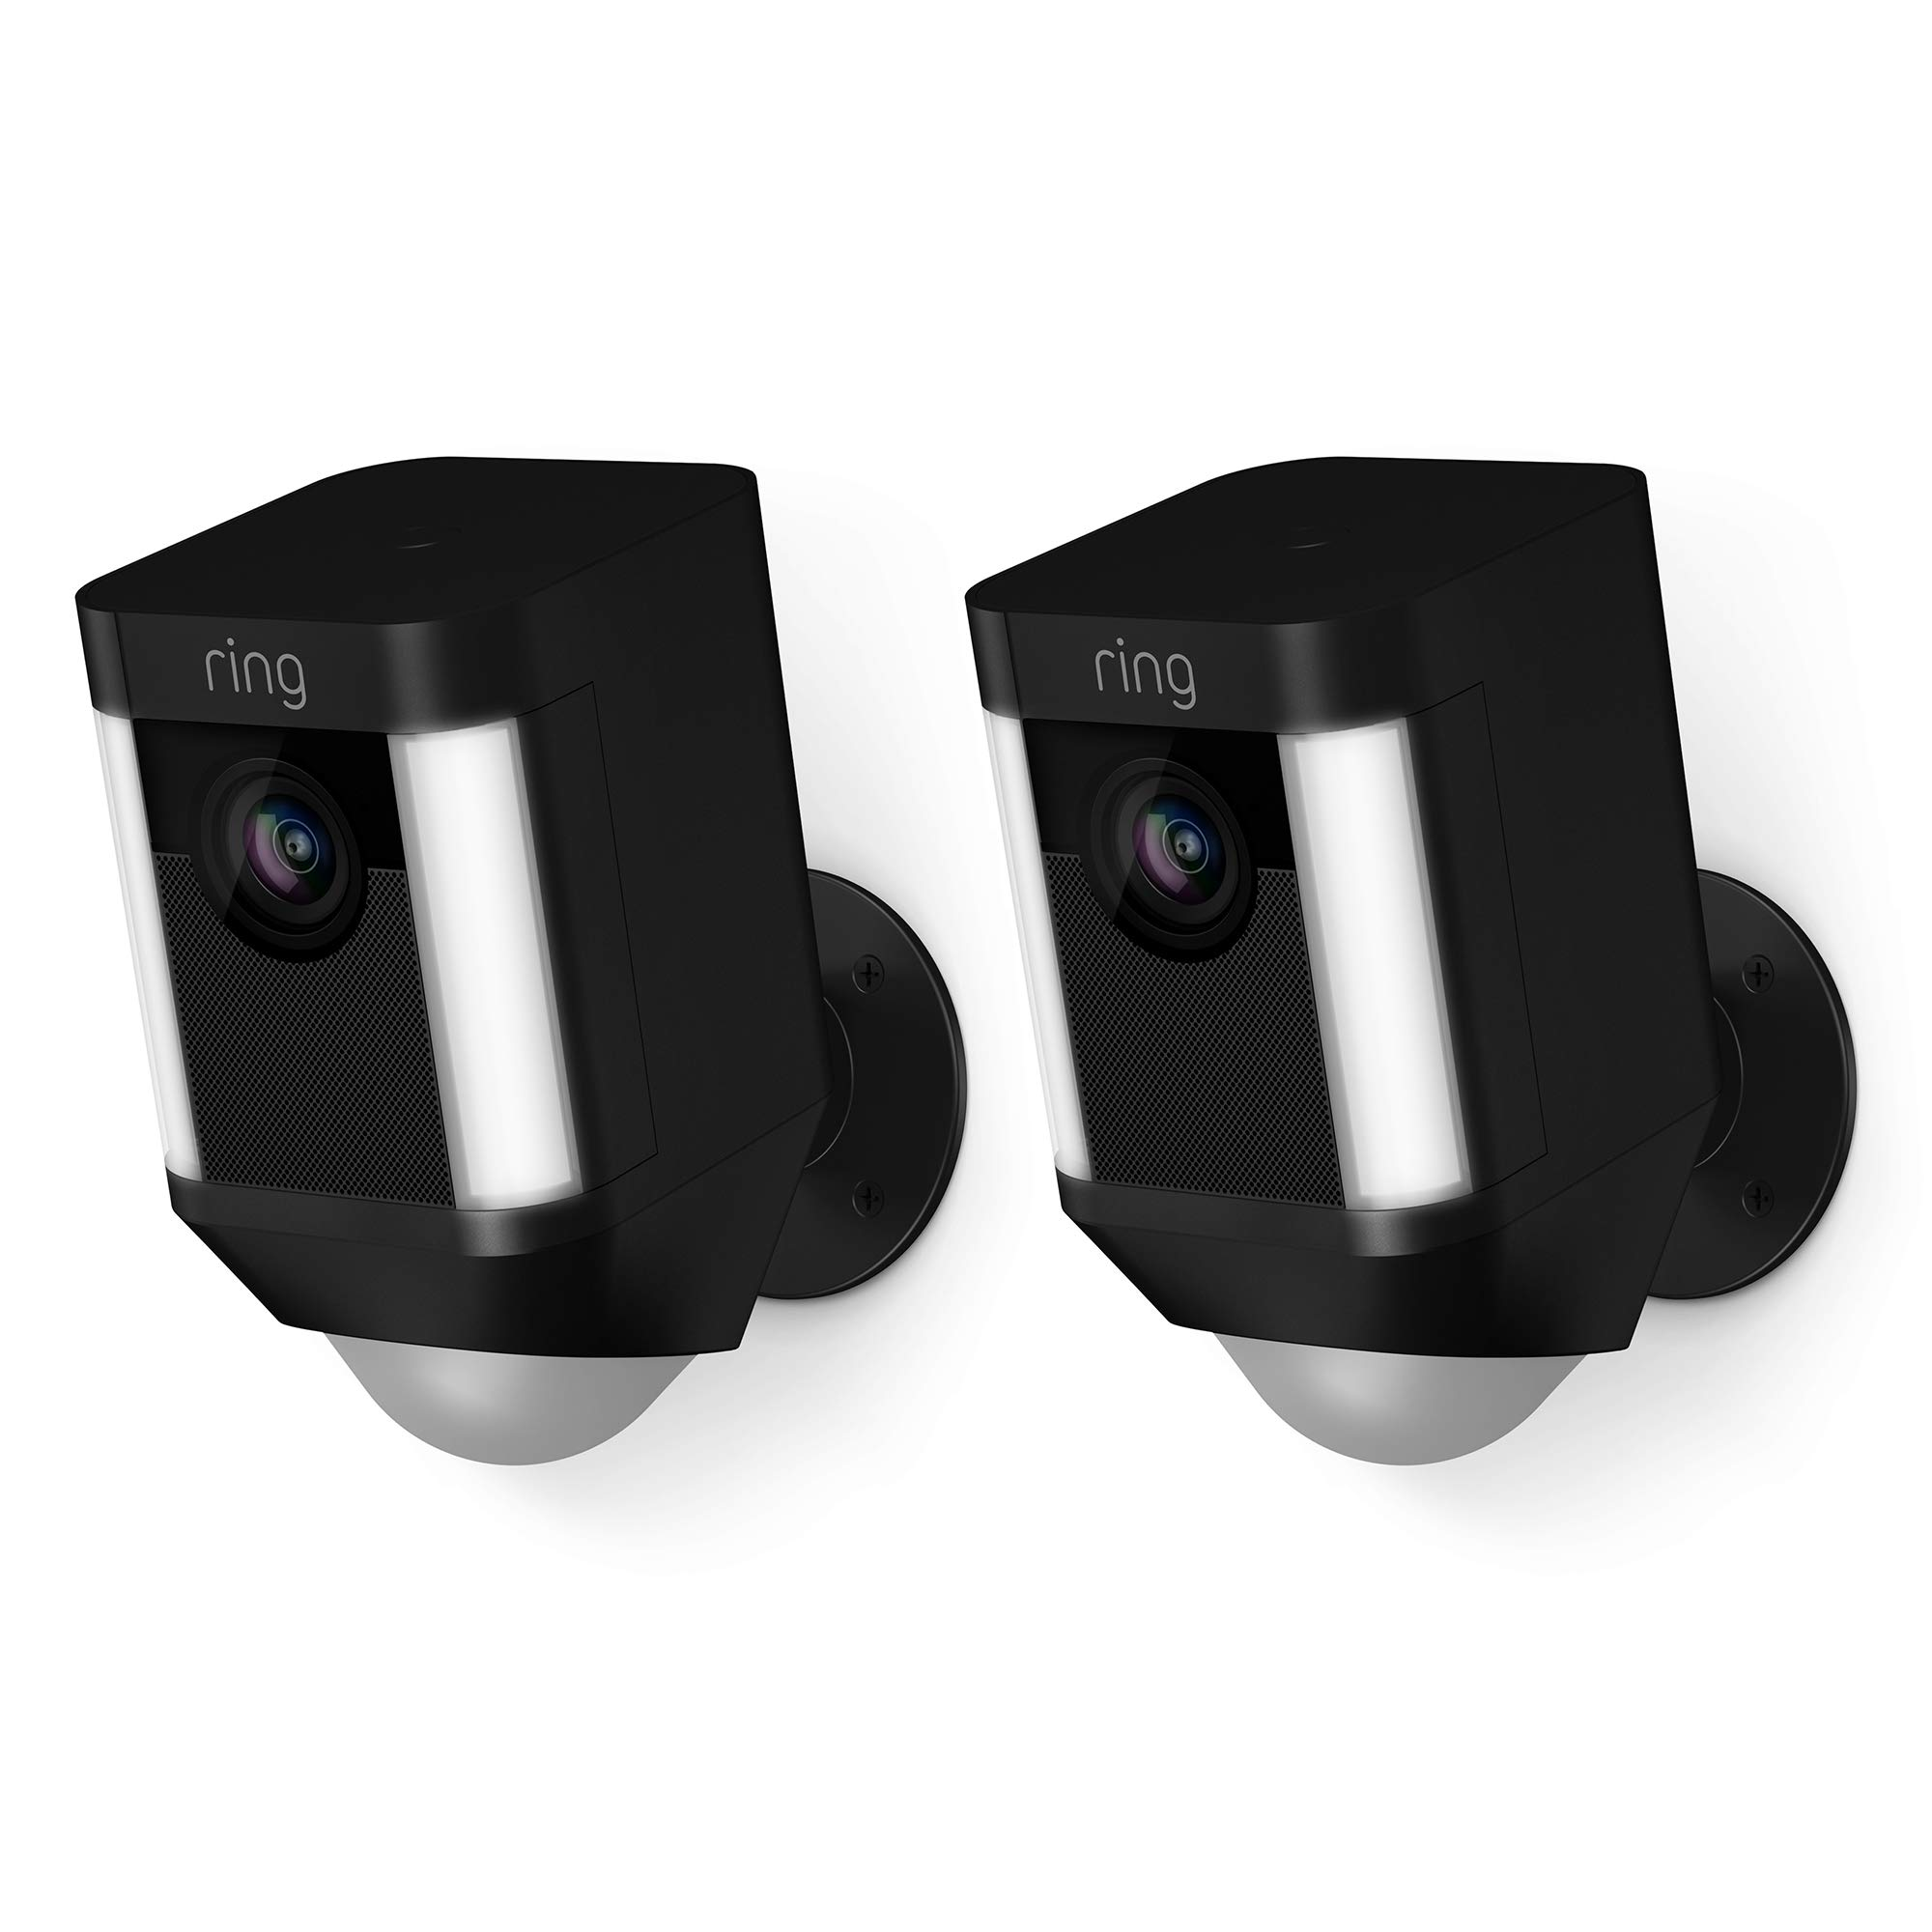 Ring Spotlight Cam Battery HD Security Camera with Built Two-Way Talk and a Siren Alarm, Black, Works with Alexa - 2-Pack by Ring